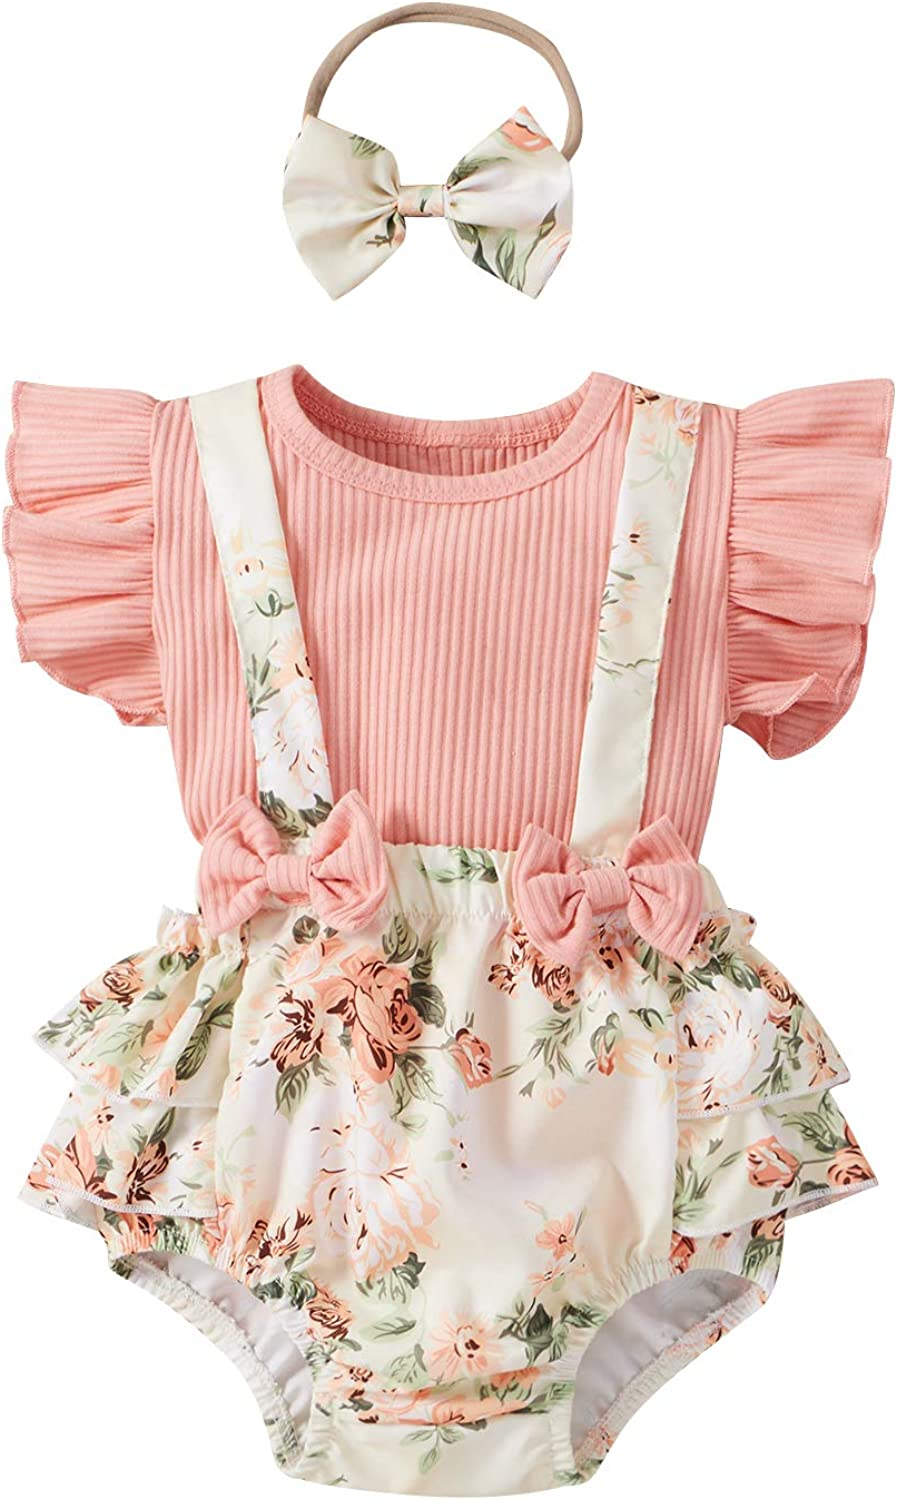 Infant Newborn Baby Girl Summer Floral Outfit Ruffle Shirt Suspender Shorts with Headband 3pcs Clothes Set